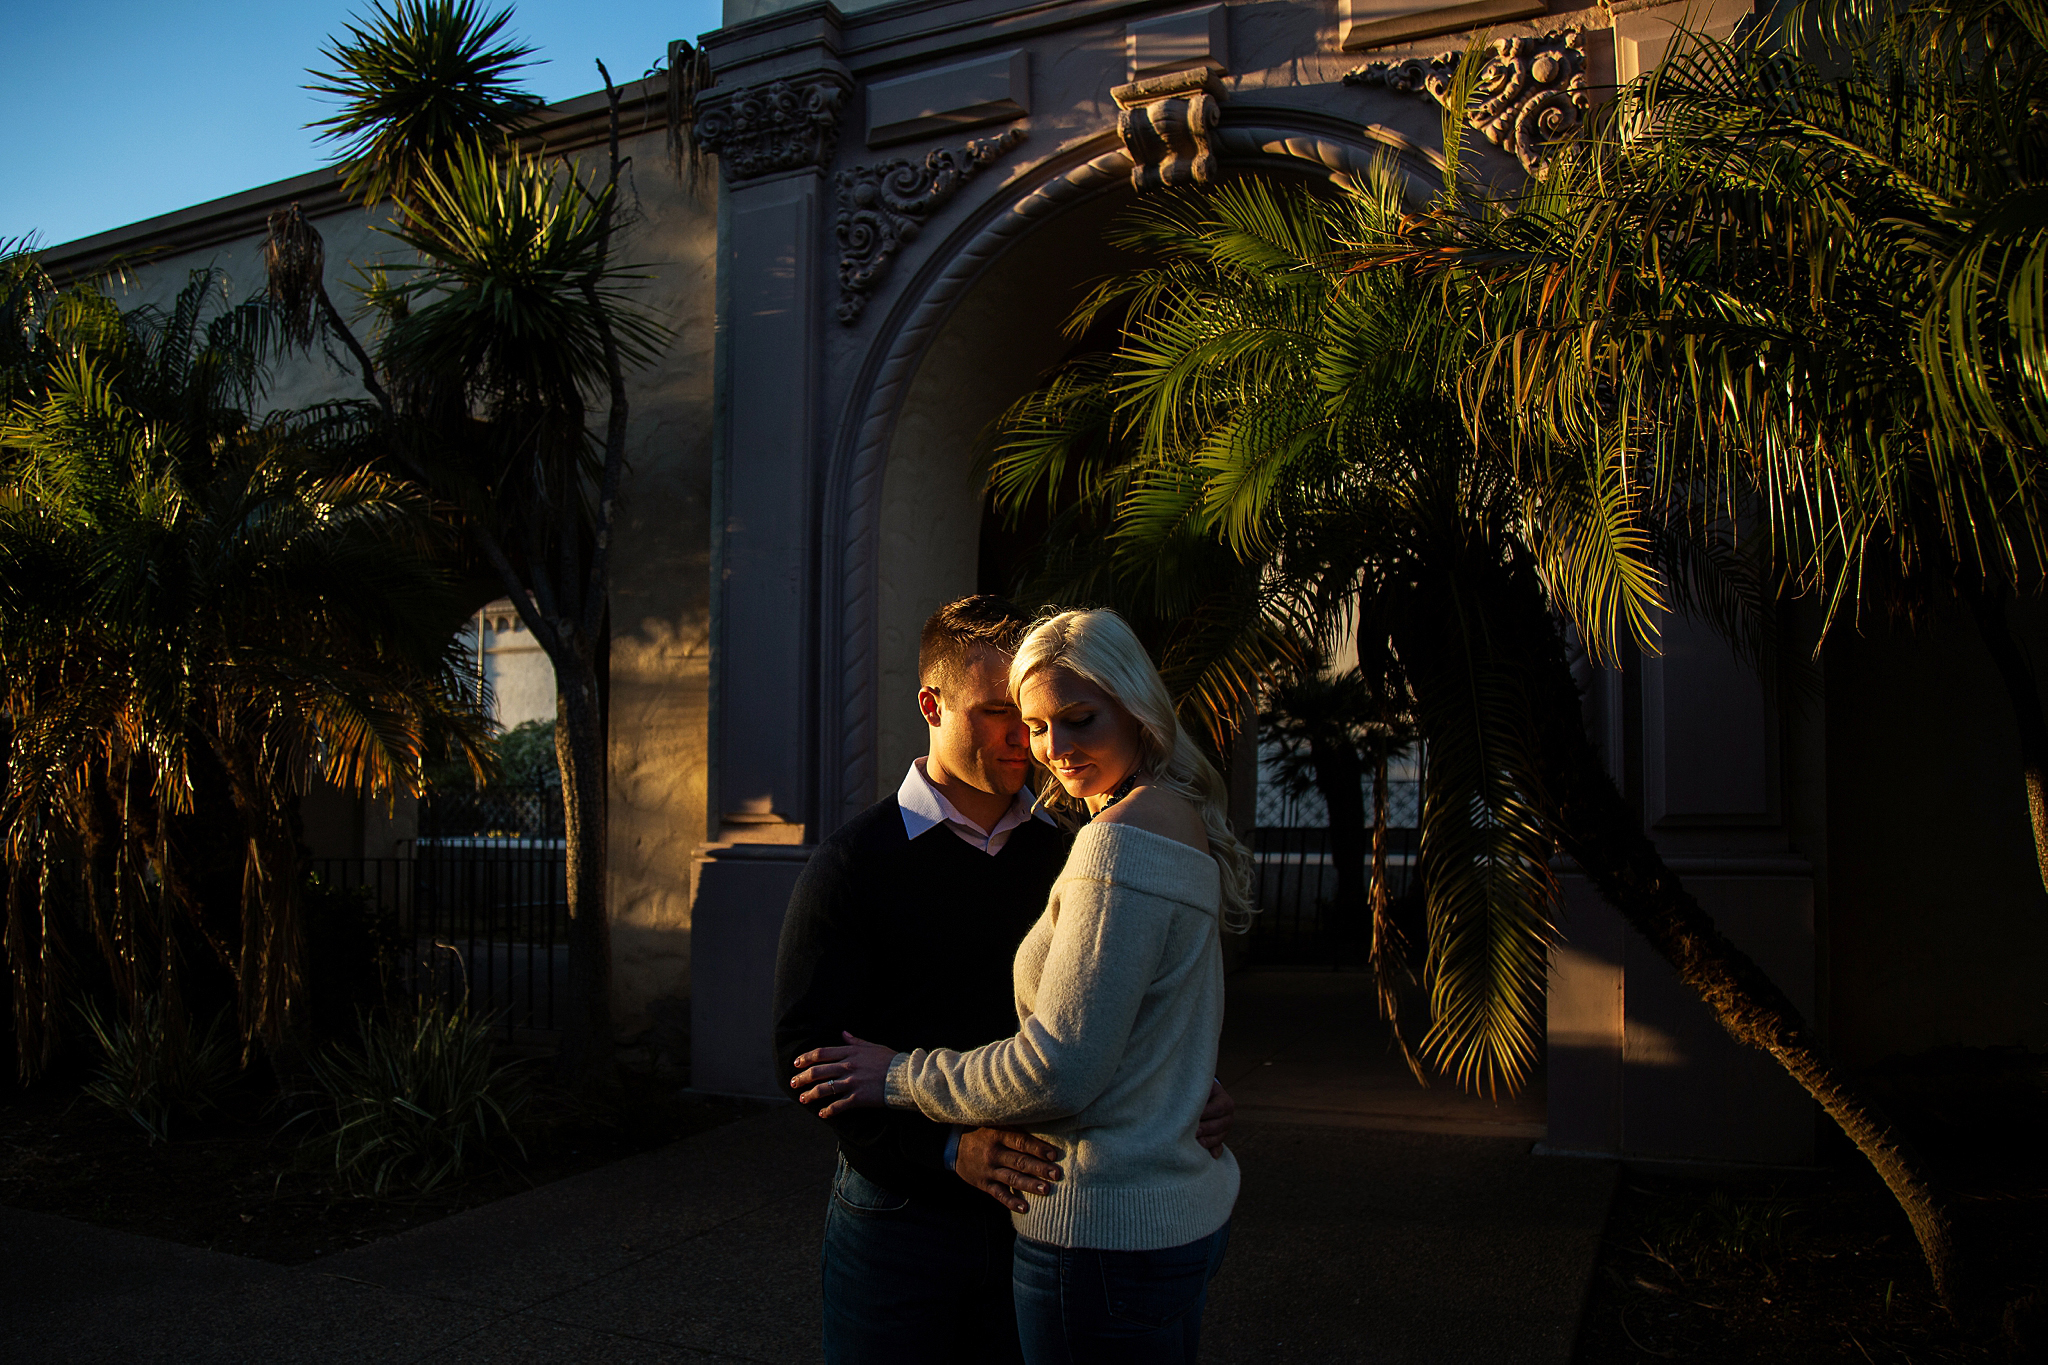 The California golden light perfectly illuminates the couple. Photographed at Balboa Park in San Diego